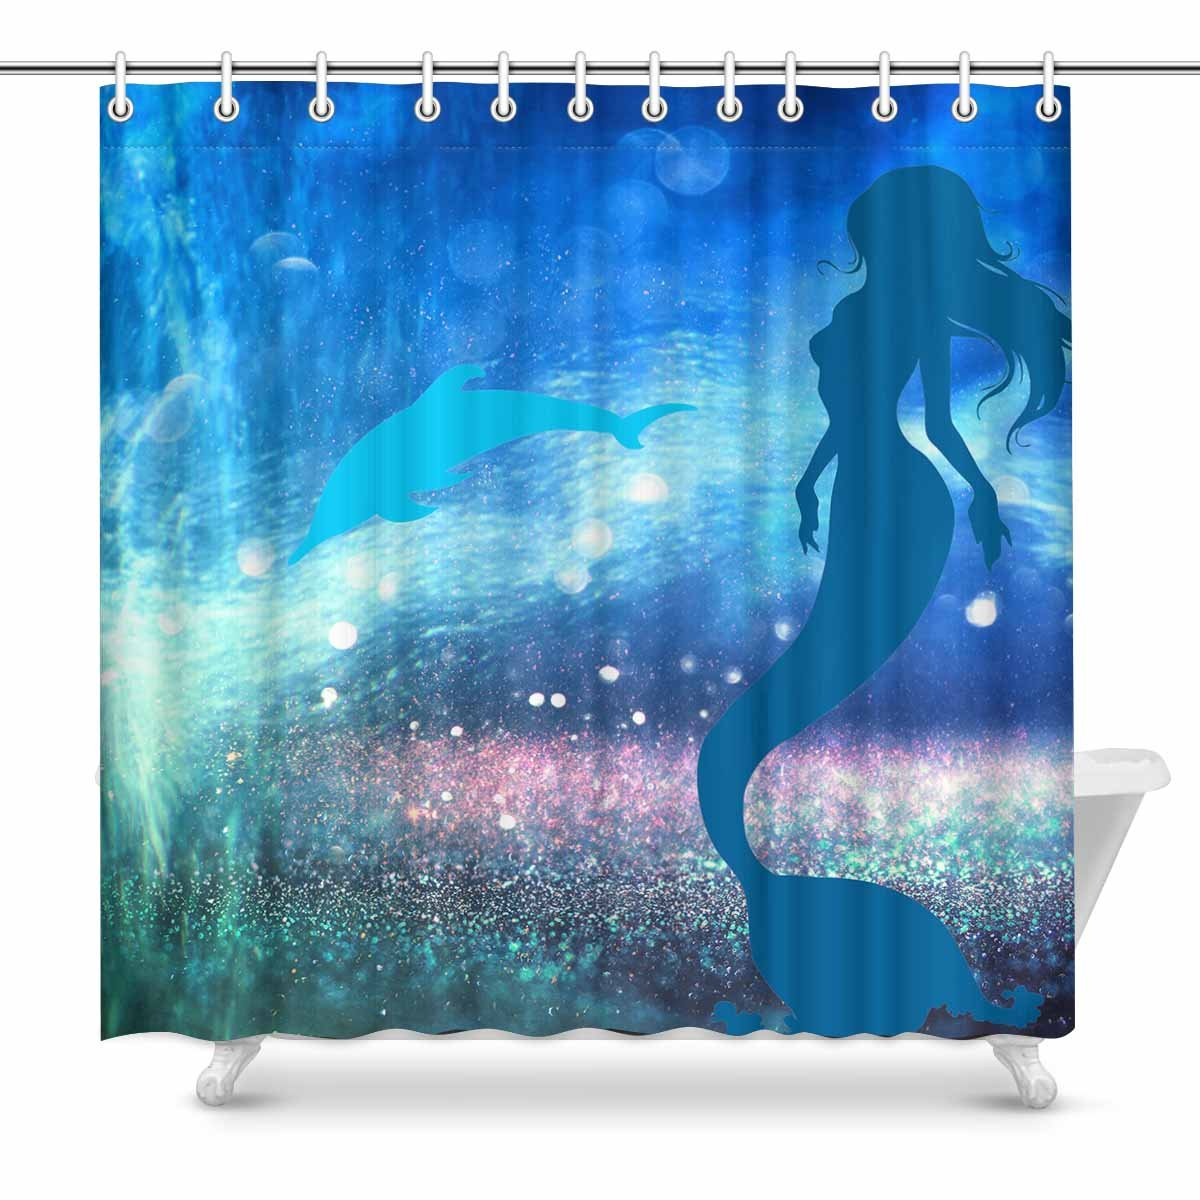 InterestPrint Fantasy Mermaid Dolphin Shower Curtain Home Decor Collection Bath Waterproof Fabric Bathroom With Hooks